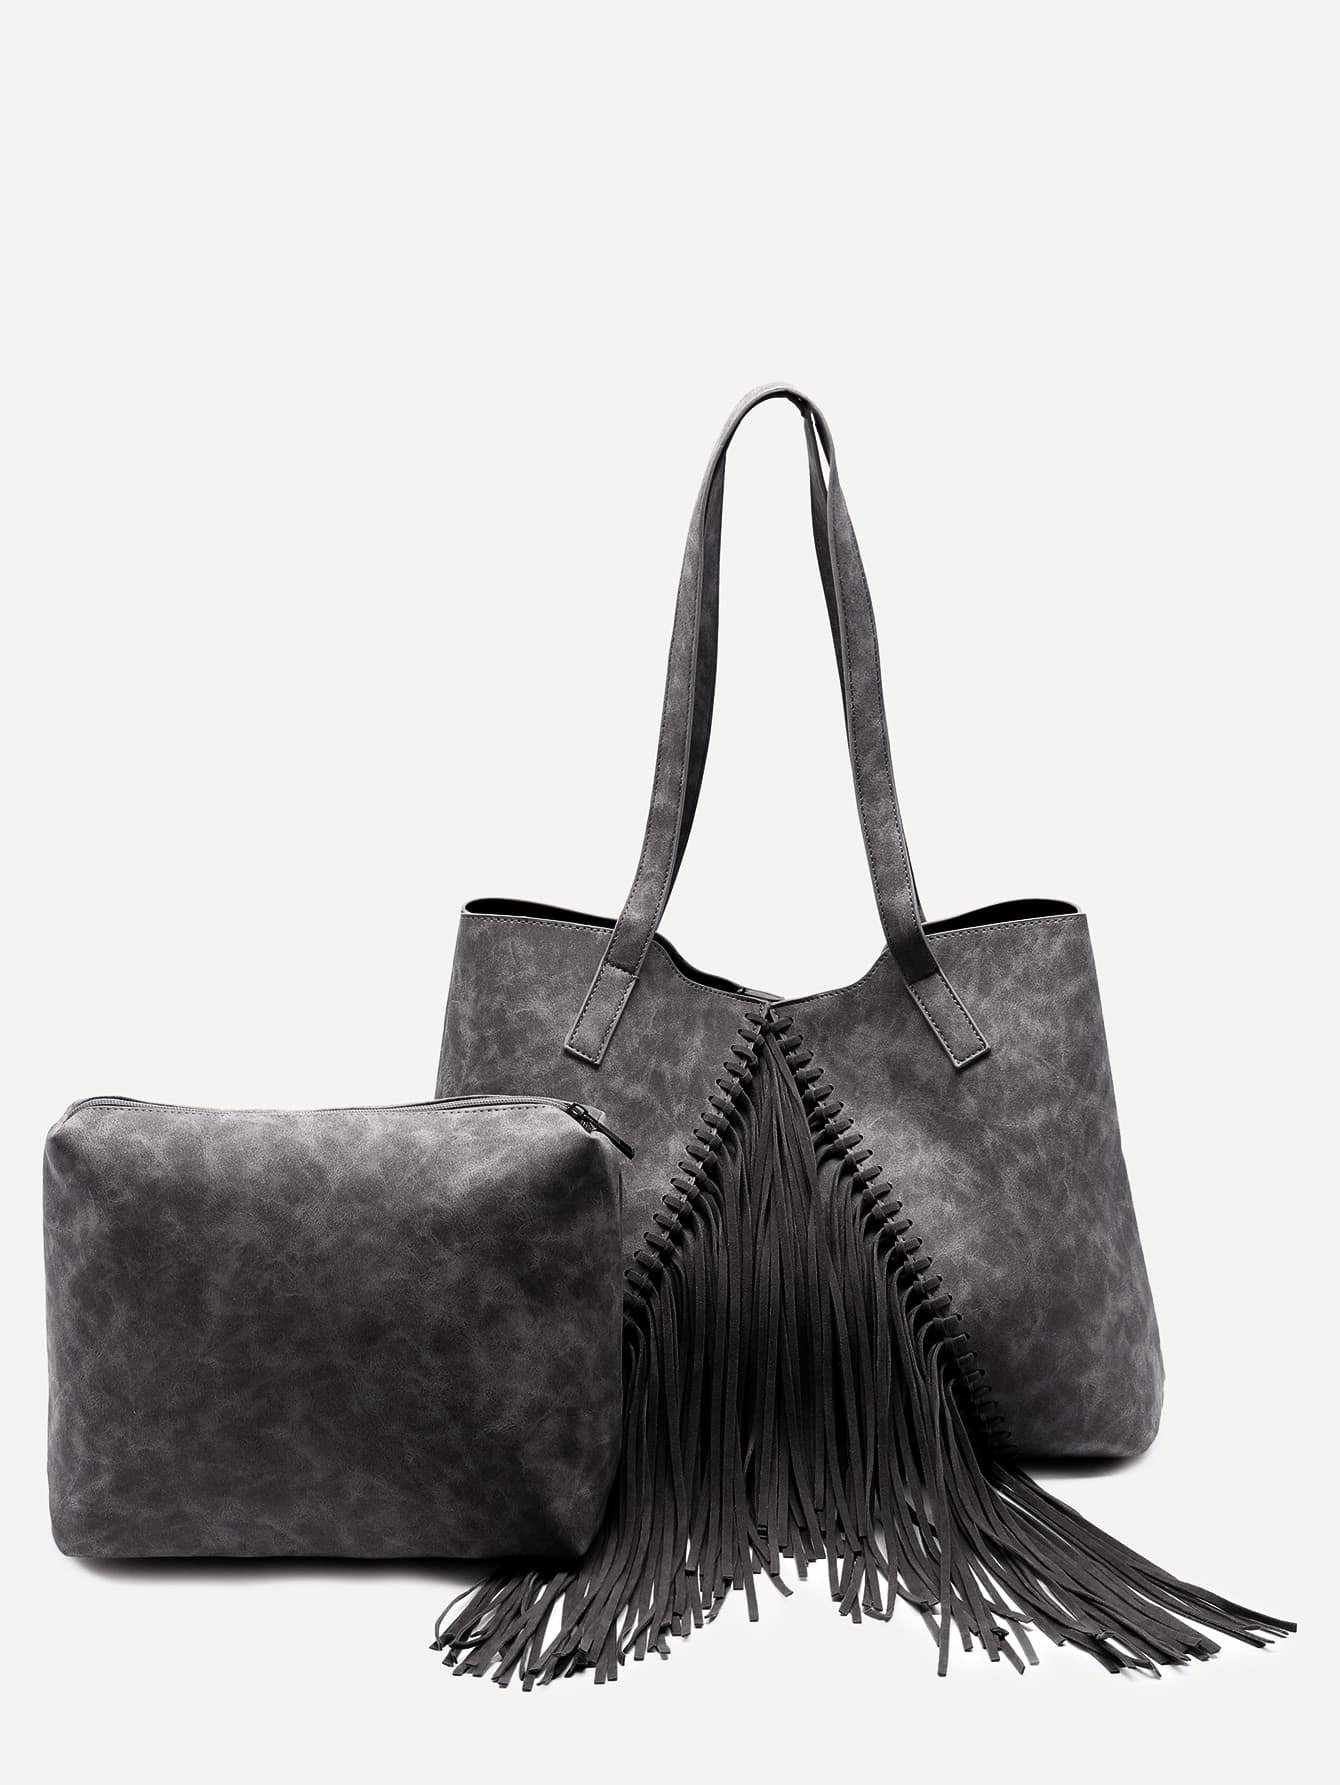 Find the best selection of cheap black leather tassel handbag in bulk here at cybergamesl.ga Including mens watch black leather and mens black leather wallets case at wholesale prices from black leather tassel handbag manufacturers. Source discount and high quality products in hundreds of categories wholesale direct from China.